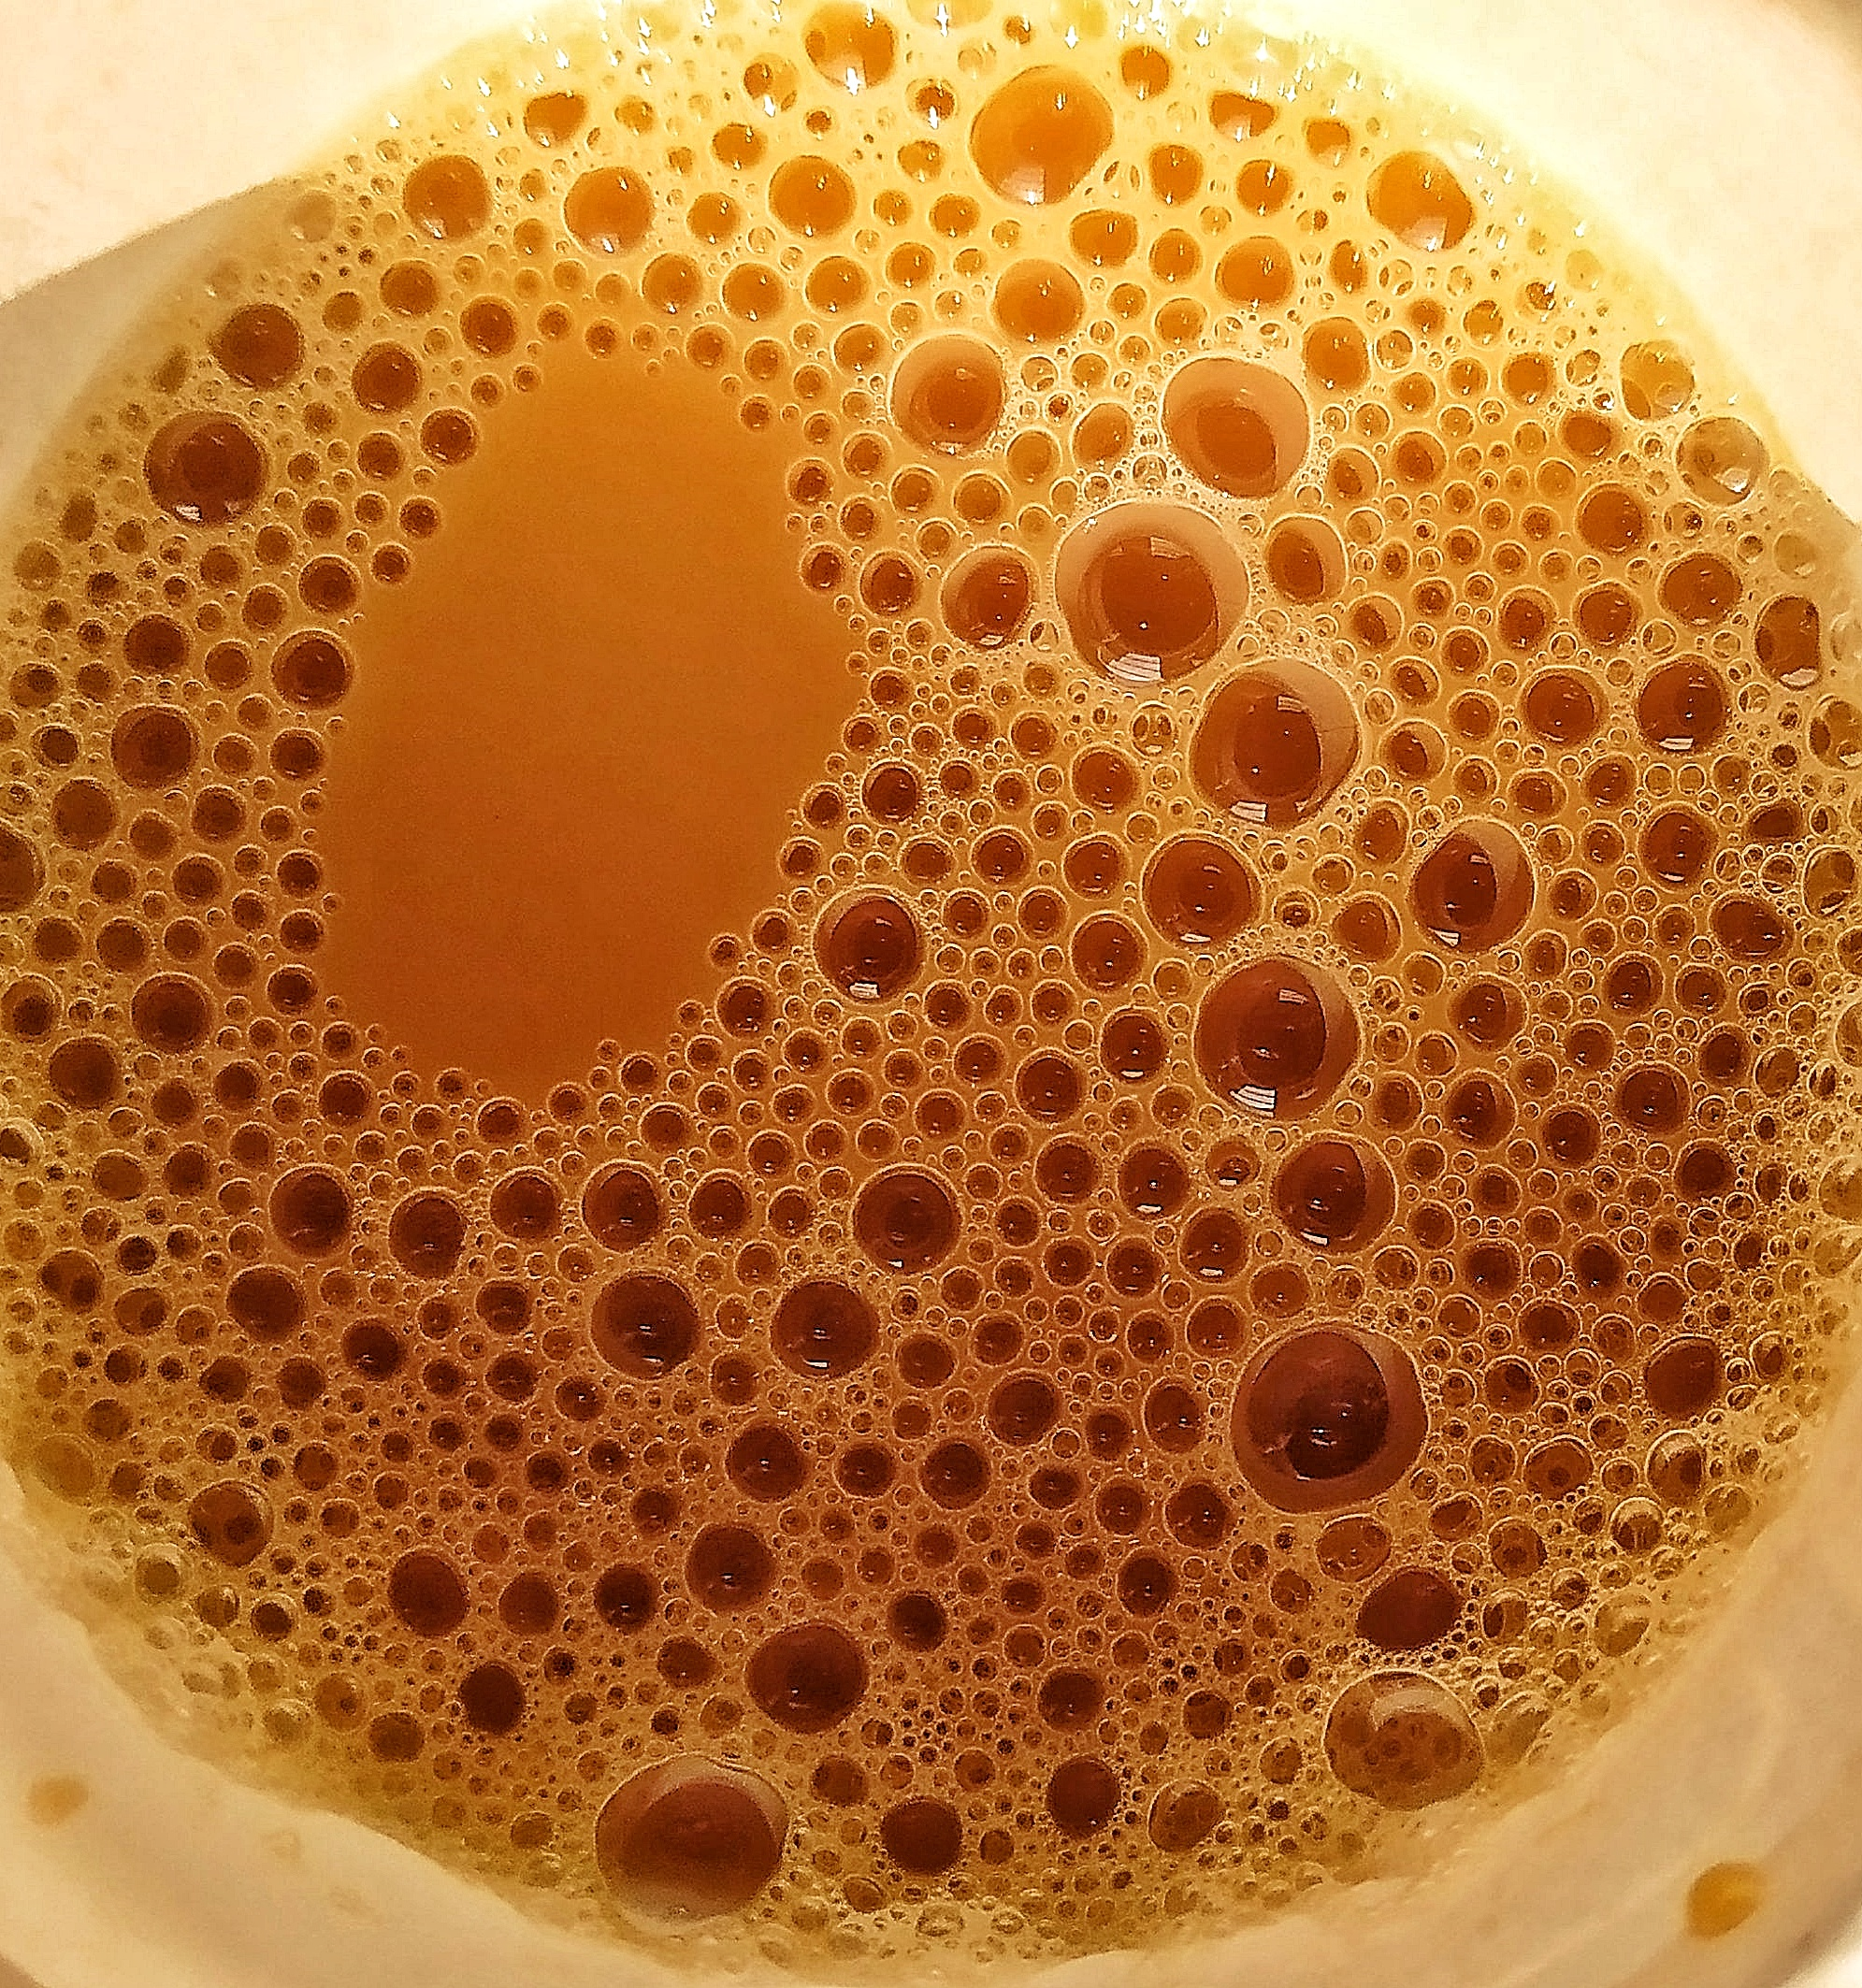 Bubbles in tea